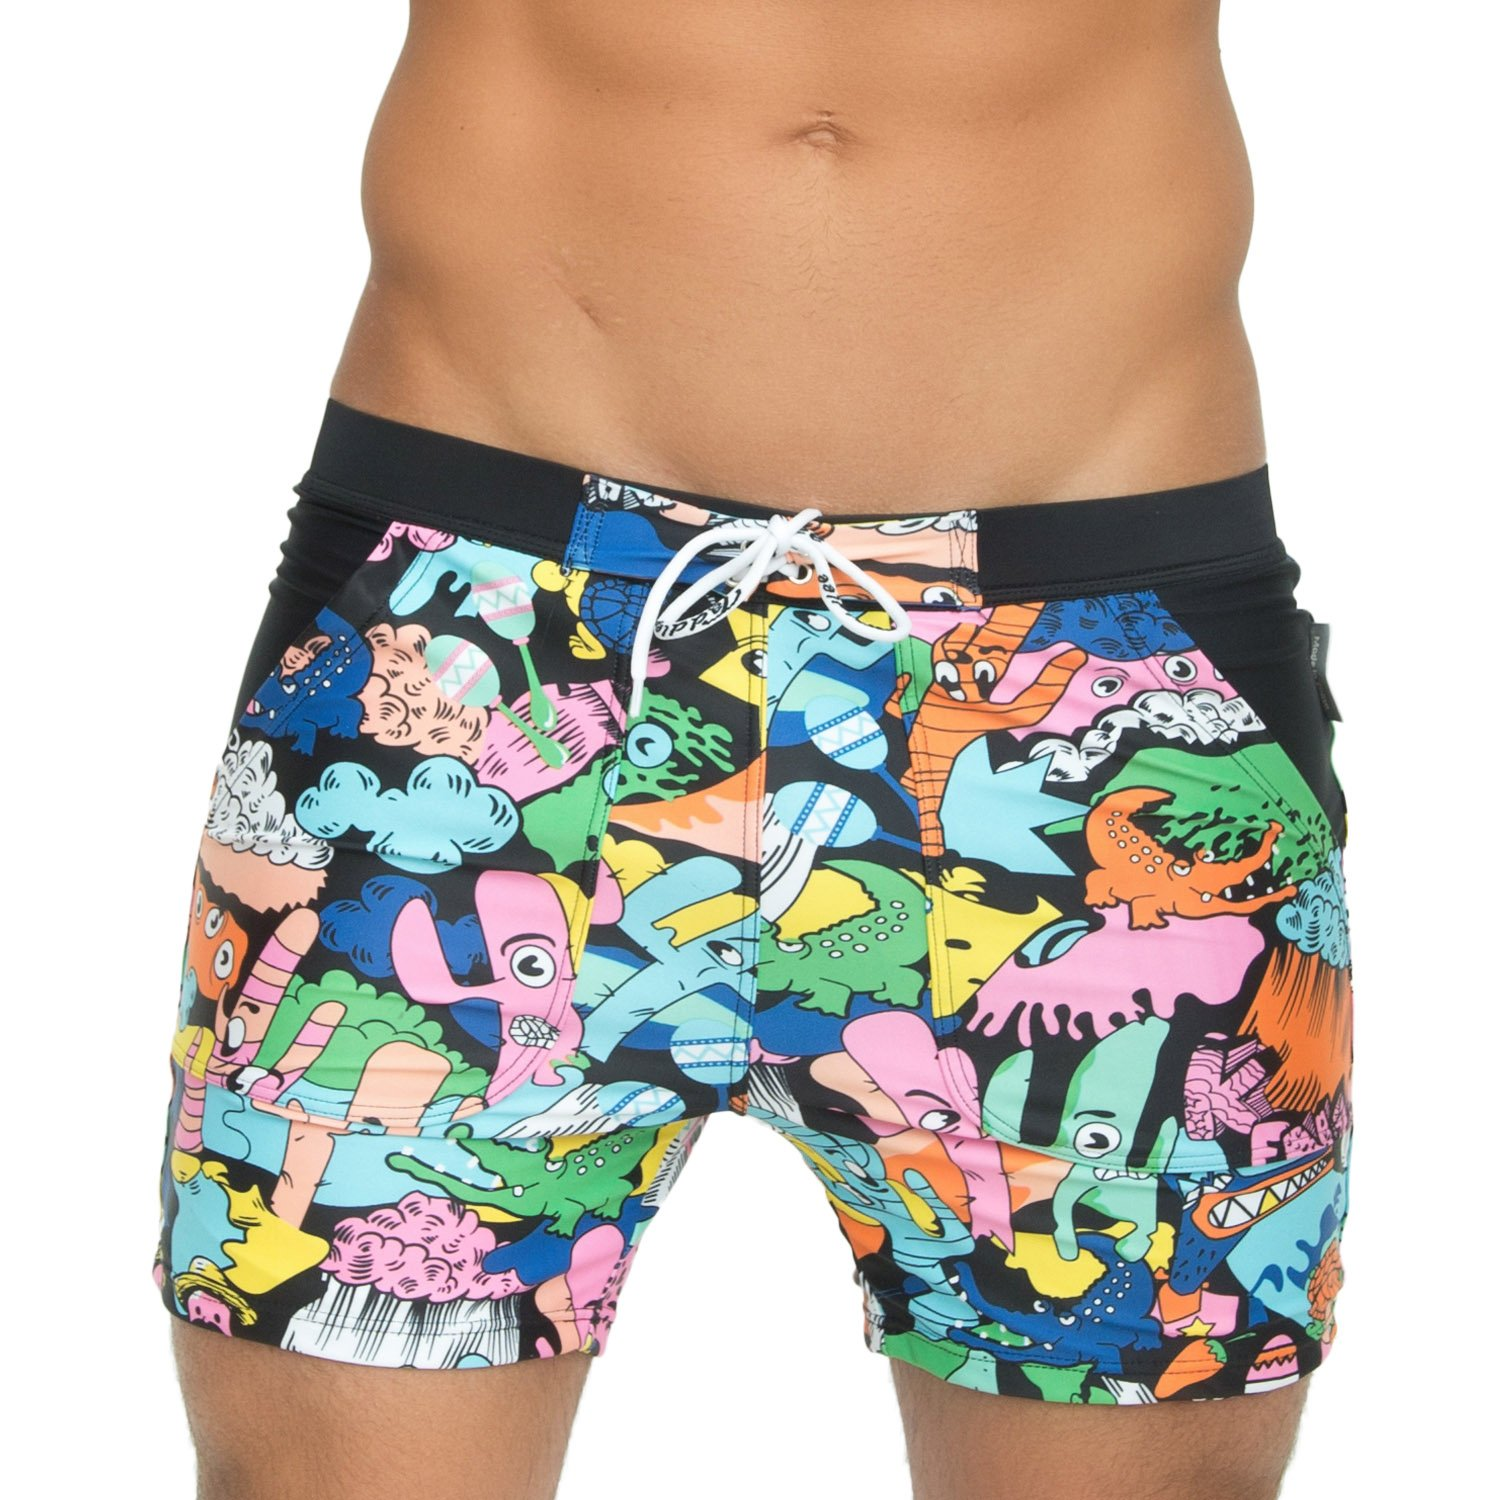 7b98928fd0 Taddlee Sexy Men Swimwear Big Tall Basic Long Swim Trunks Surf Shorts  Swimsuits The size is Europe,one size smaller than US,please read size chat  before ...